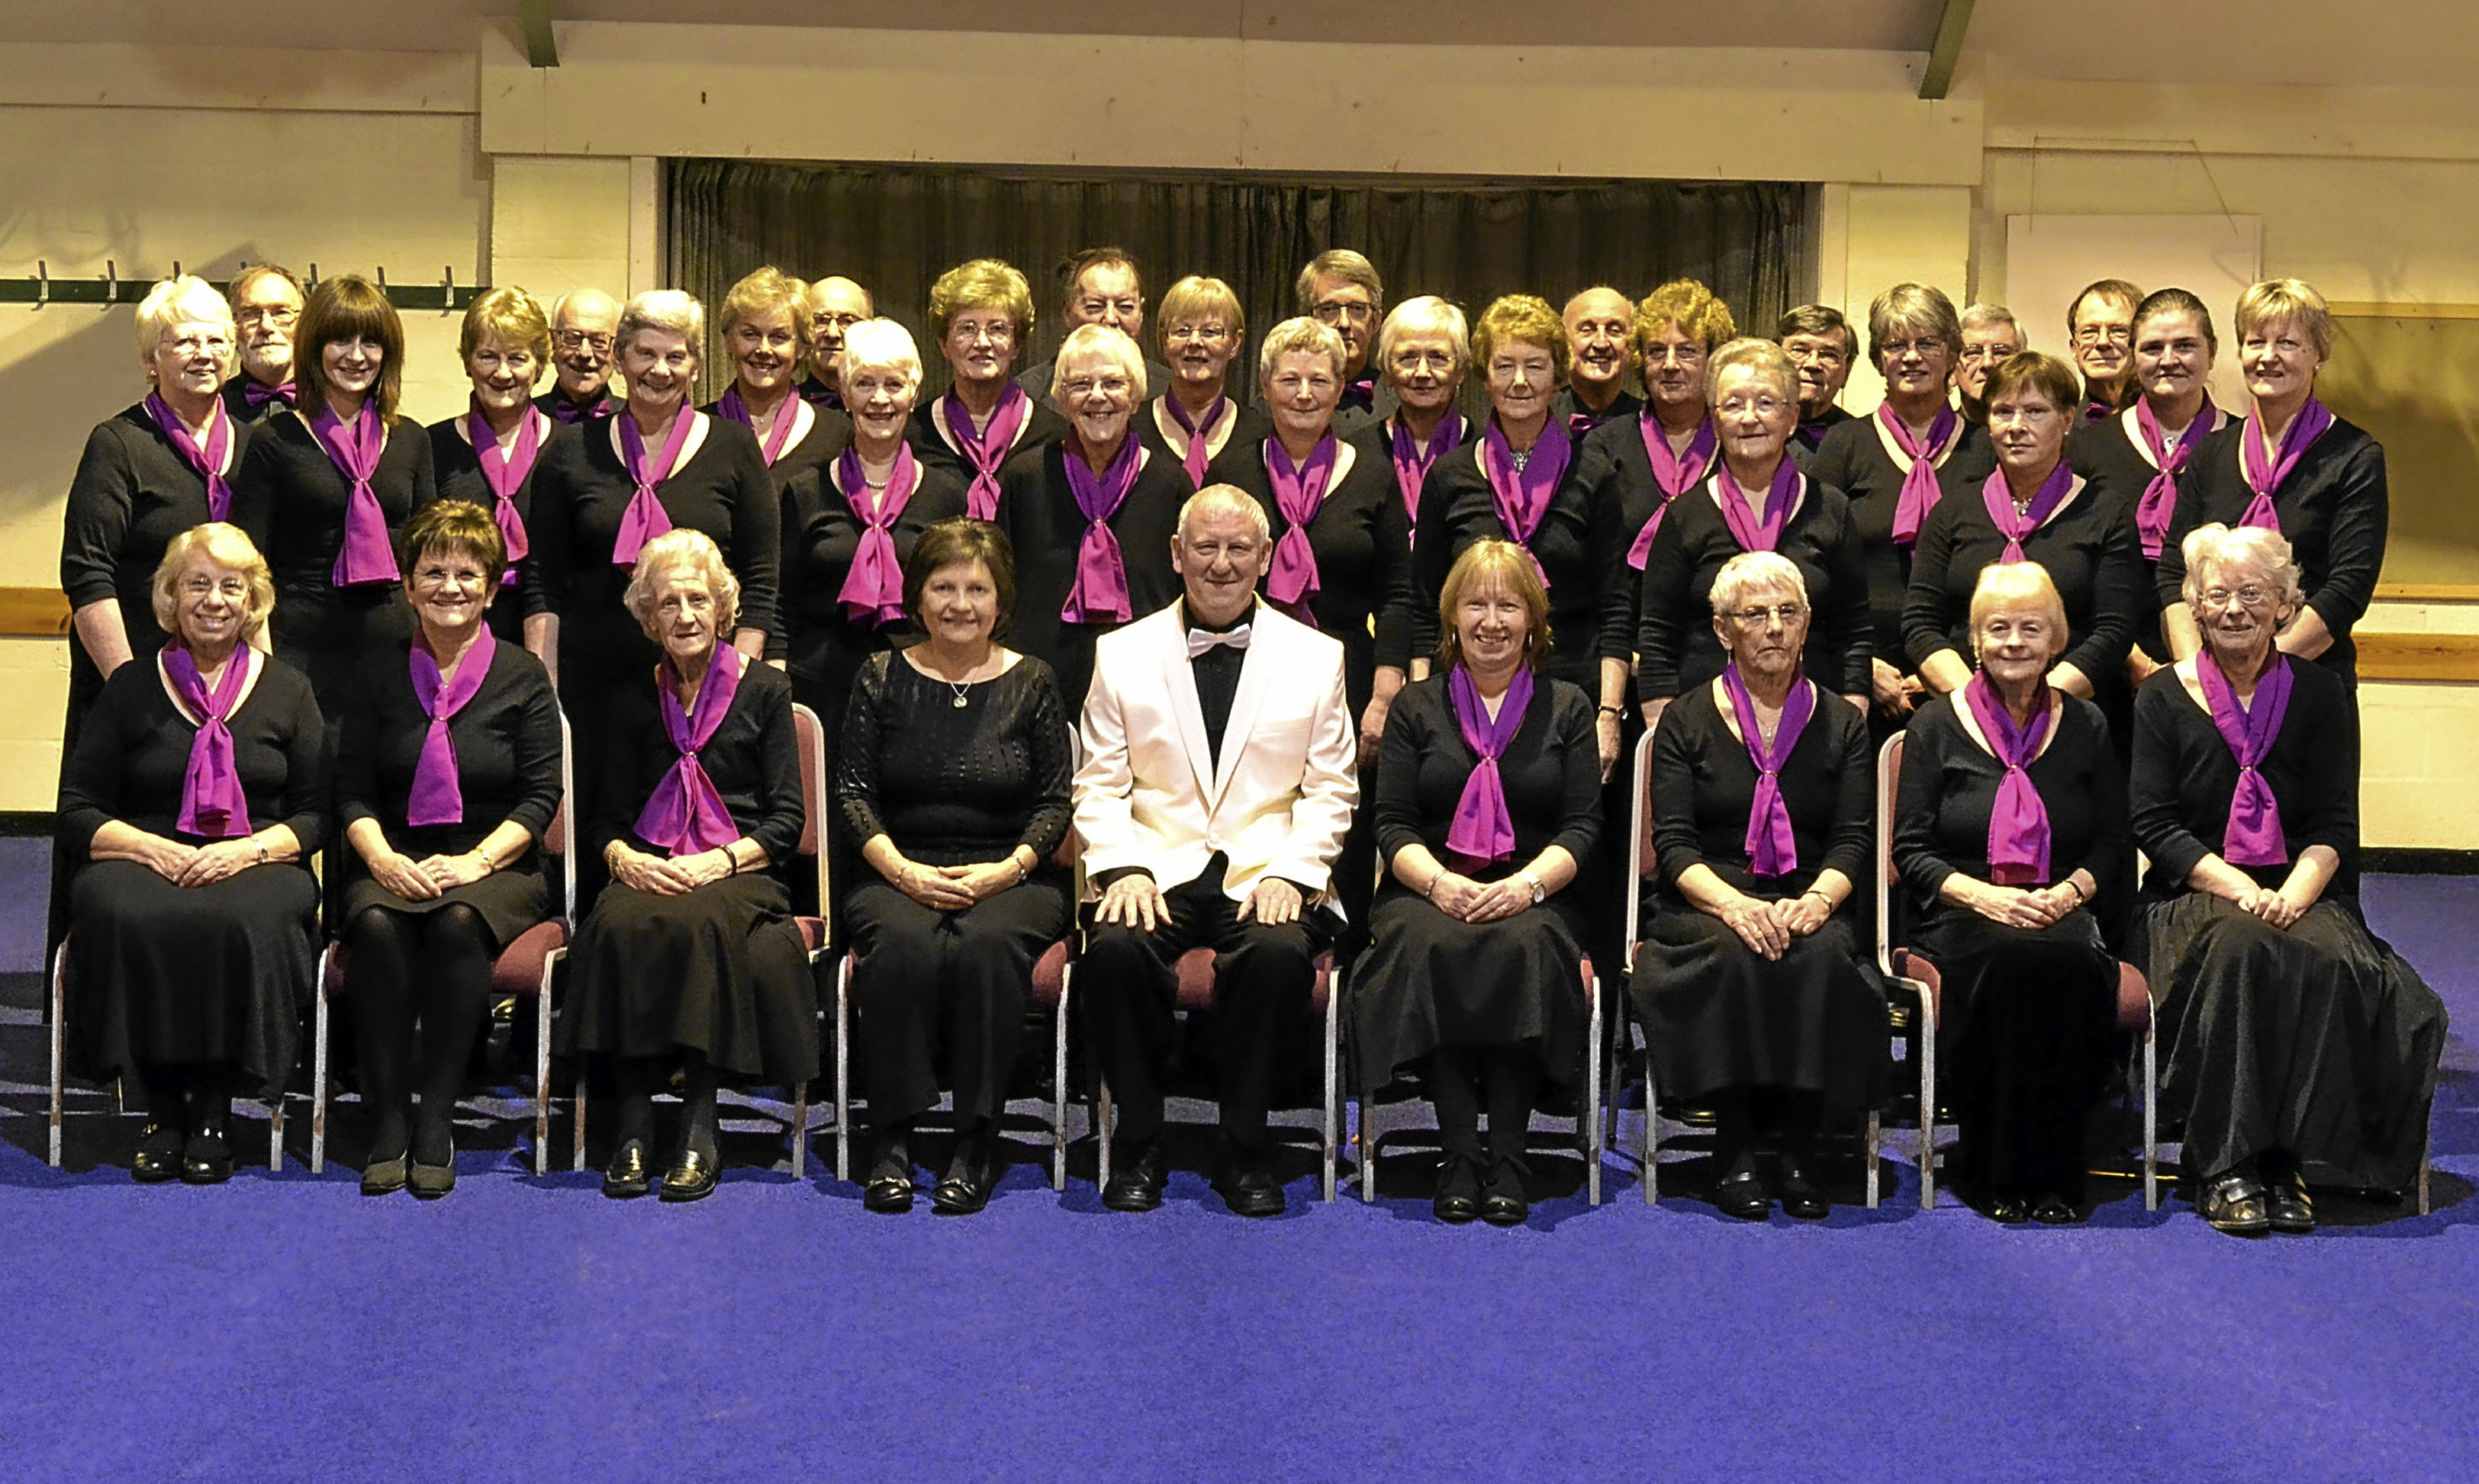 Scone based choir Encore will present its annual concert in St Ninian's Cathedral next month.